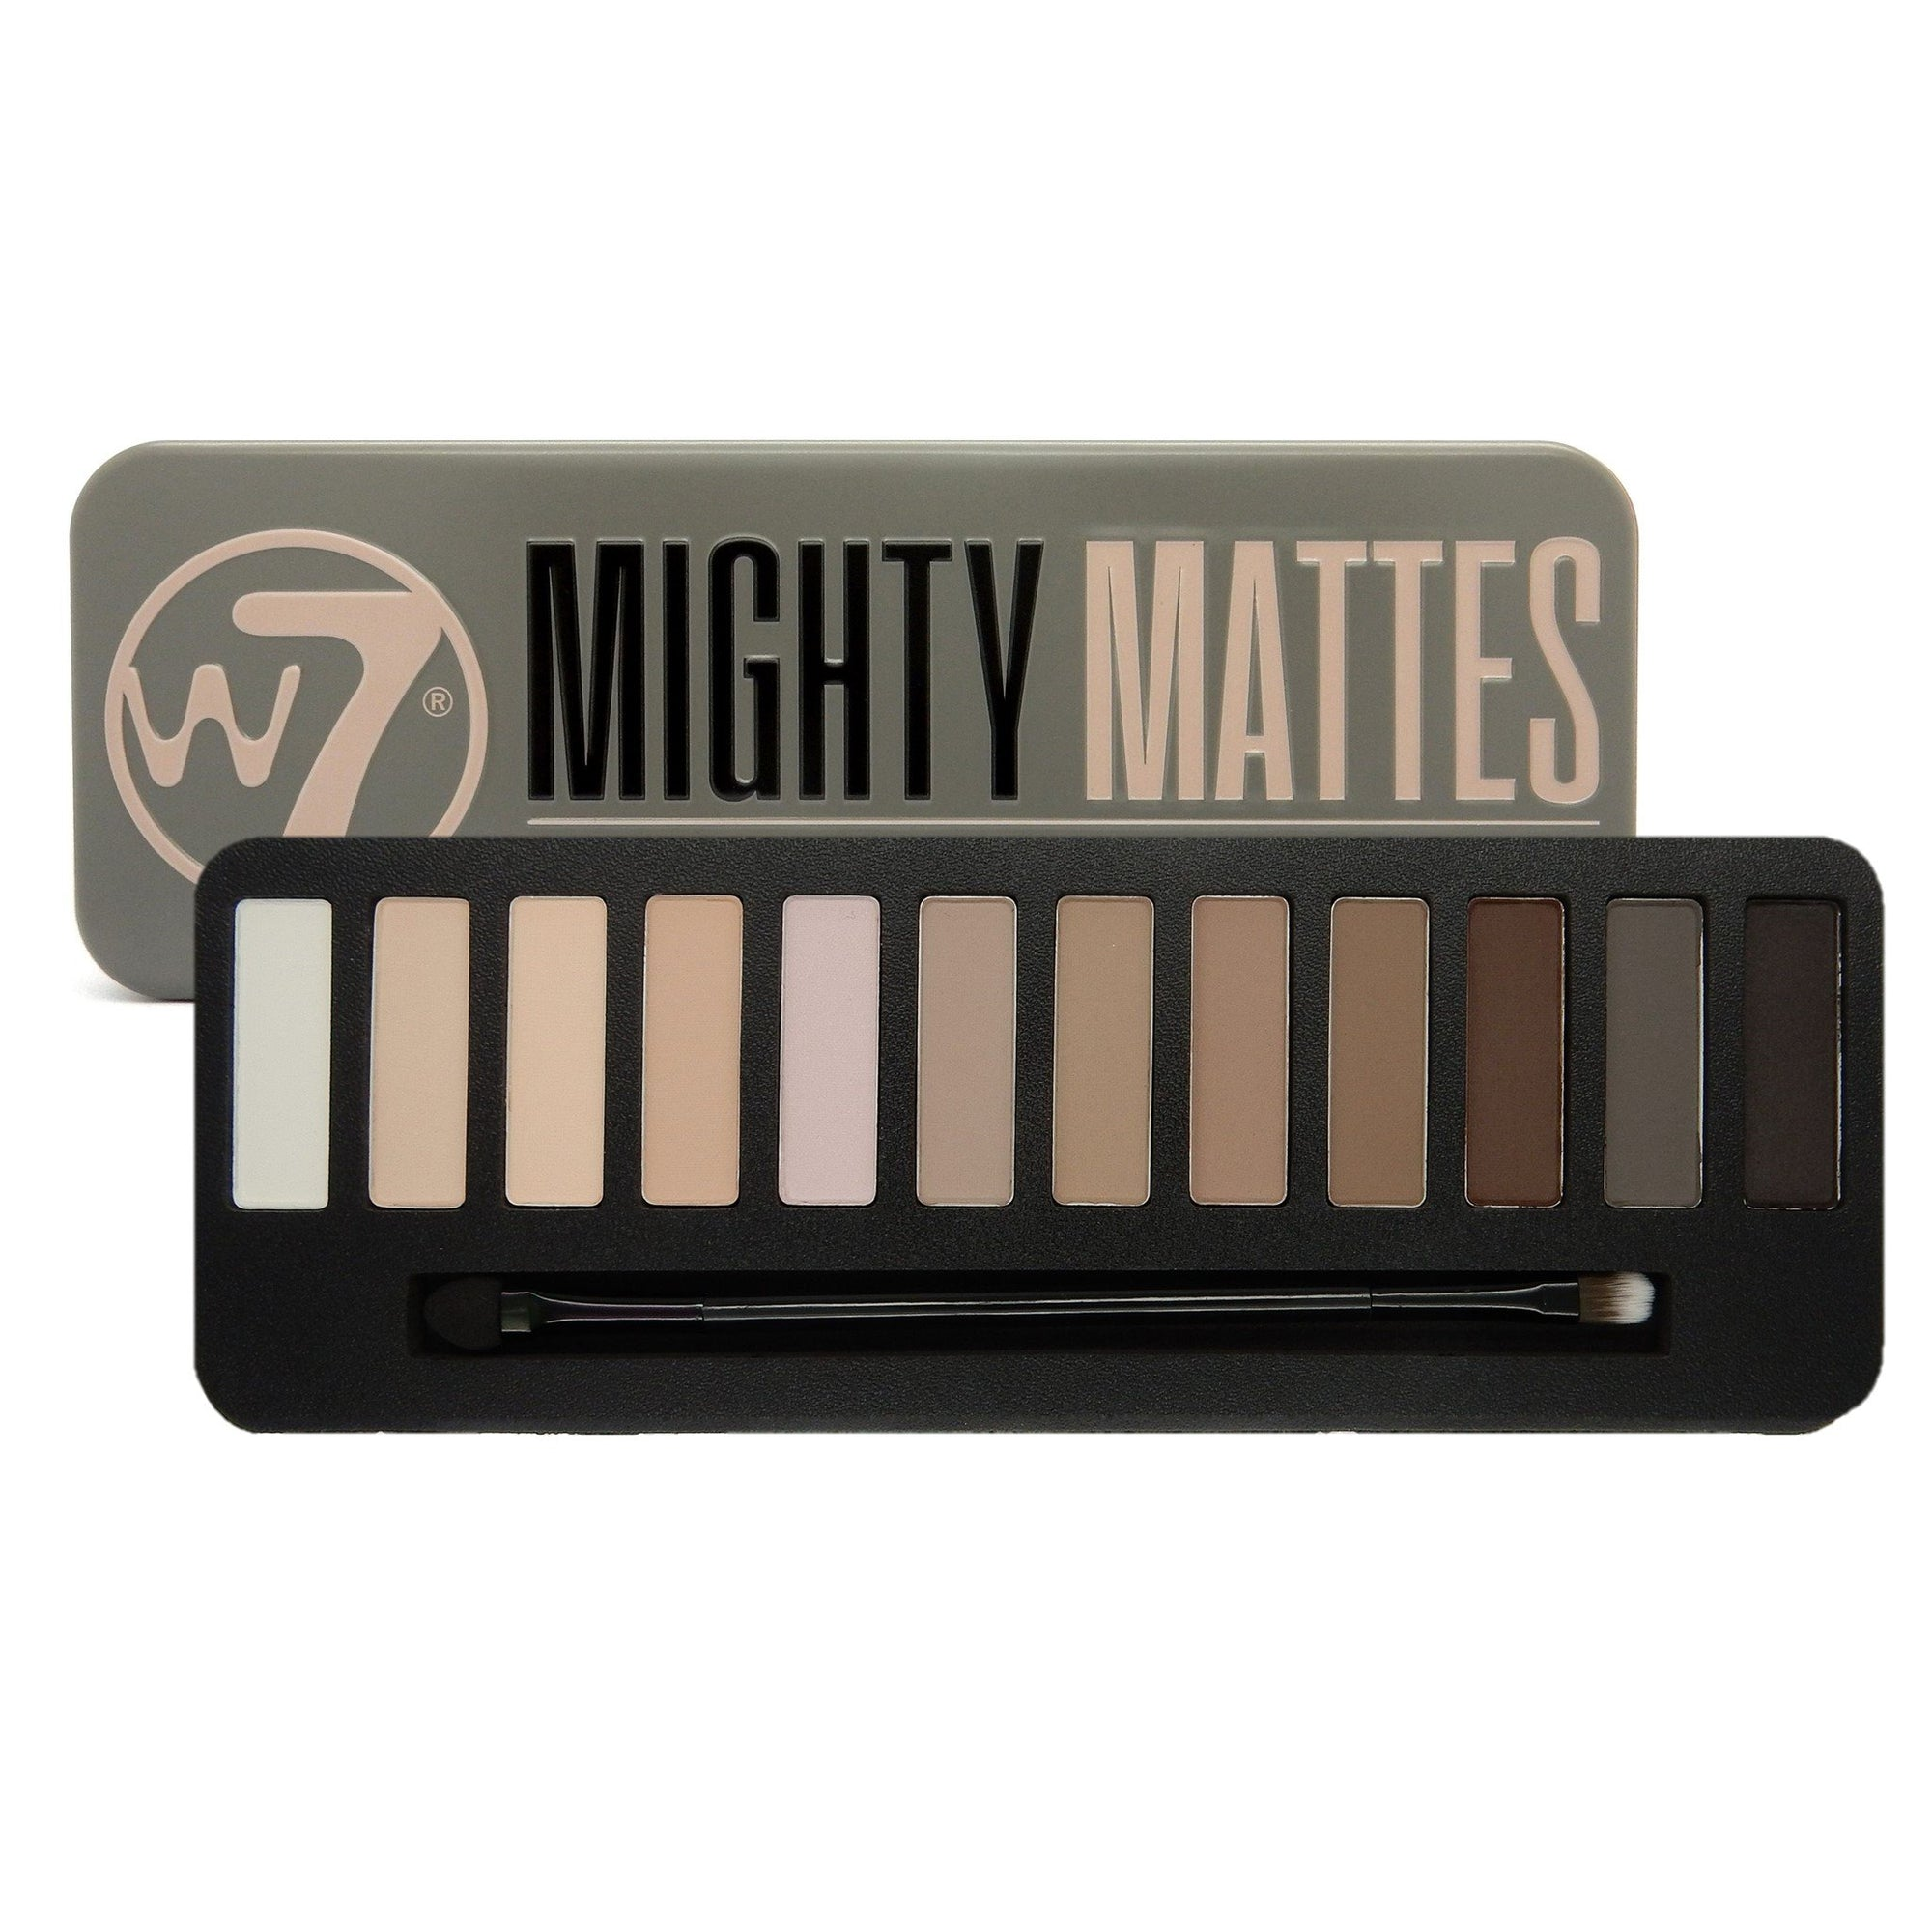 W7 Mighty Mattes Eyeshadow Palette